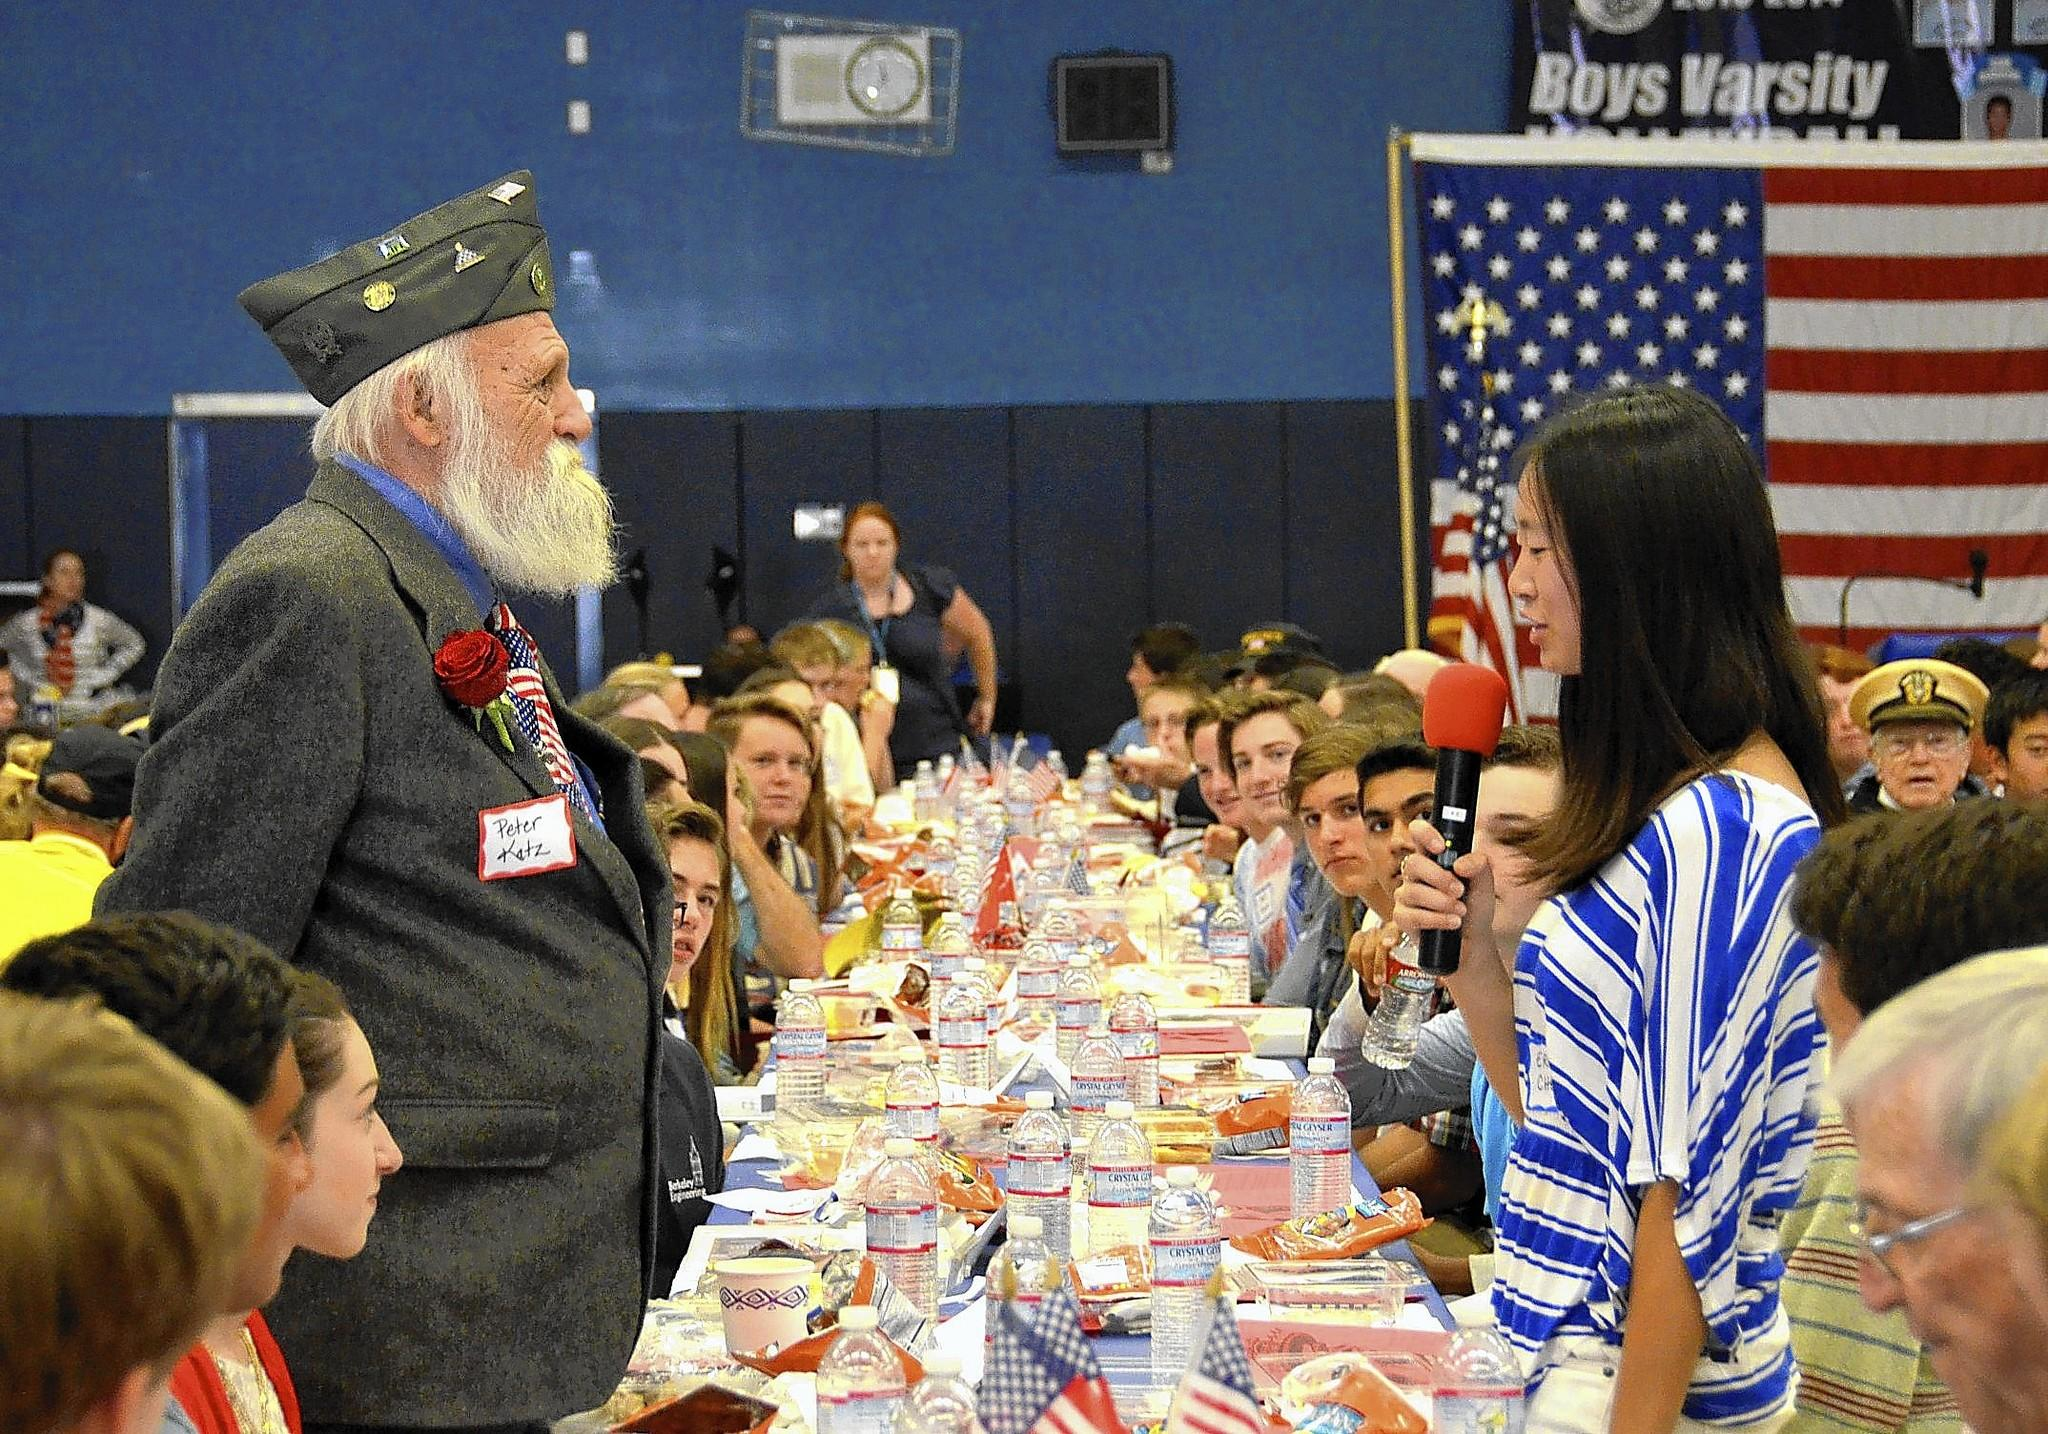 Student Erica Chen, right, introduces proud Army Veteran Peter Katz during the annual Living History Luncheon on Thursday at Corona Del Mar high school.